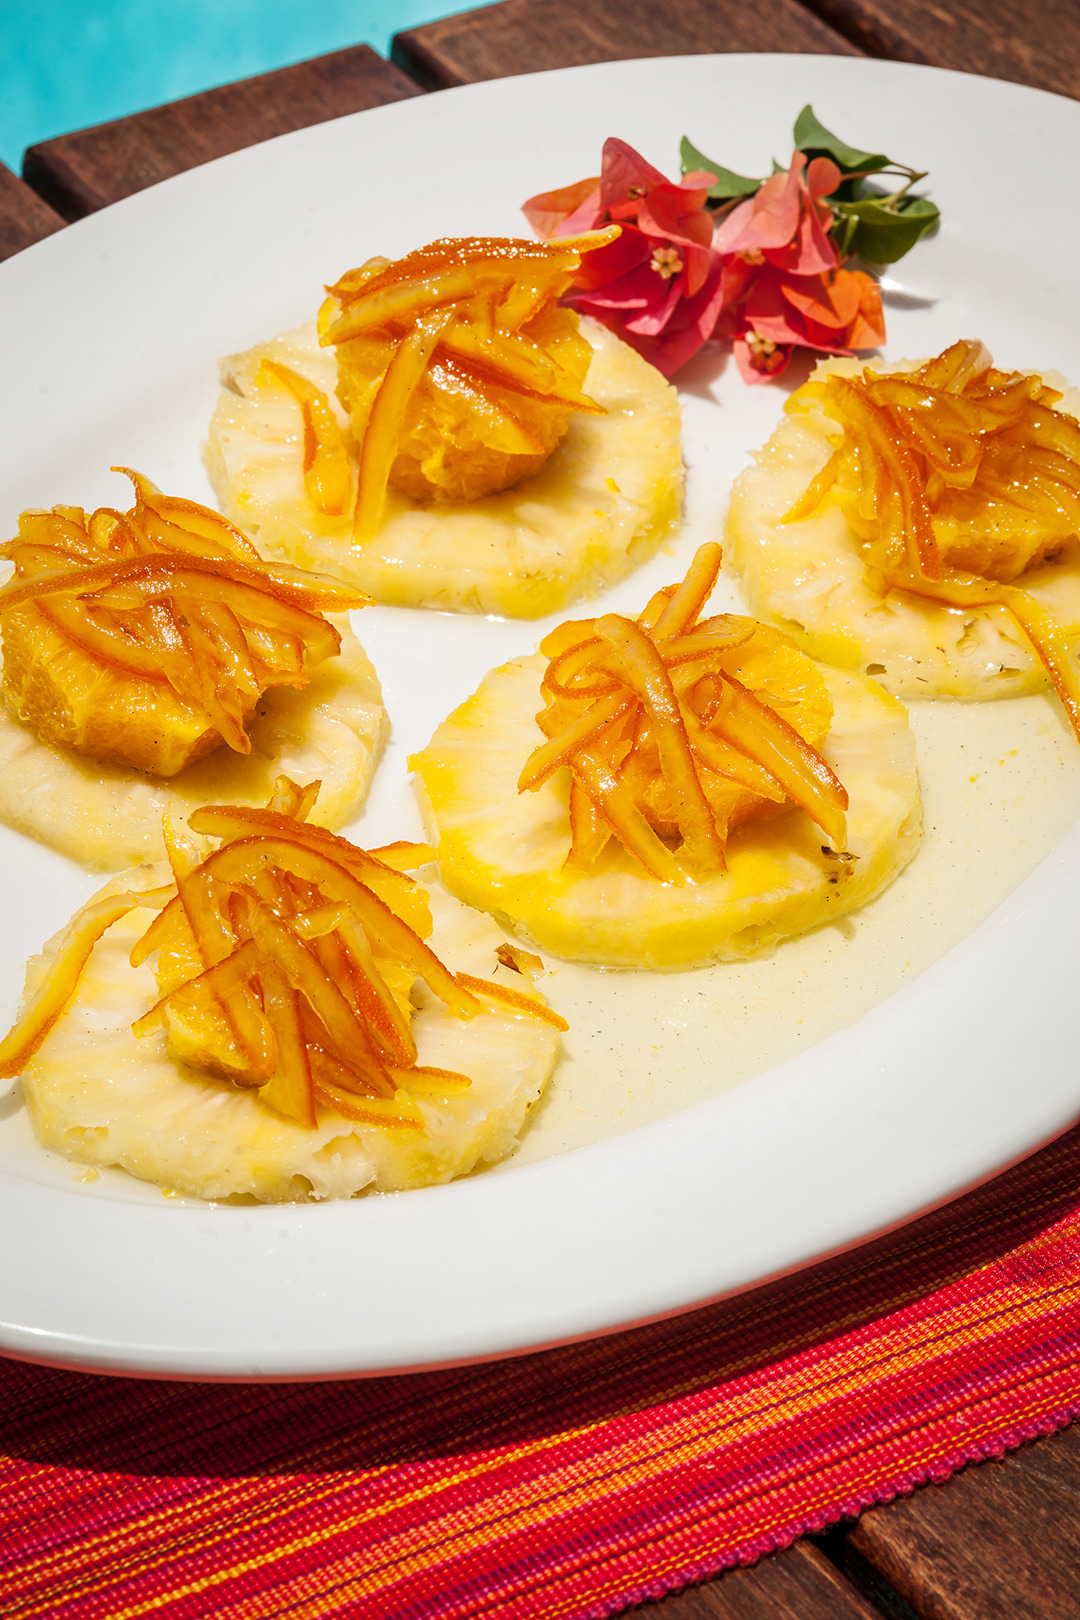 Pineapple Cardinale Parizzi (Pineapple and Orange Desserts) - Gourmet: April 1983